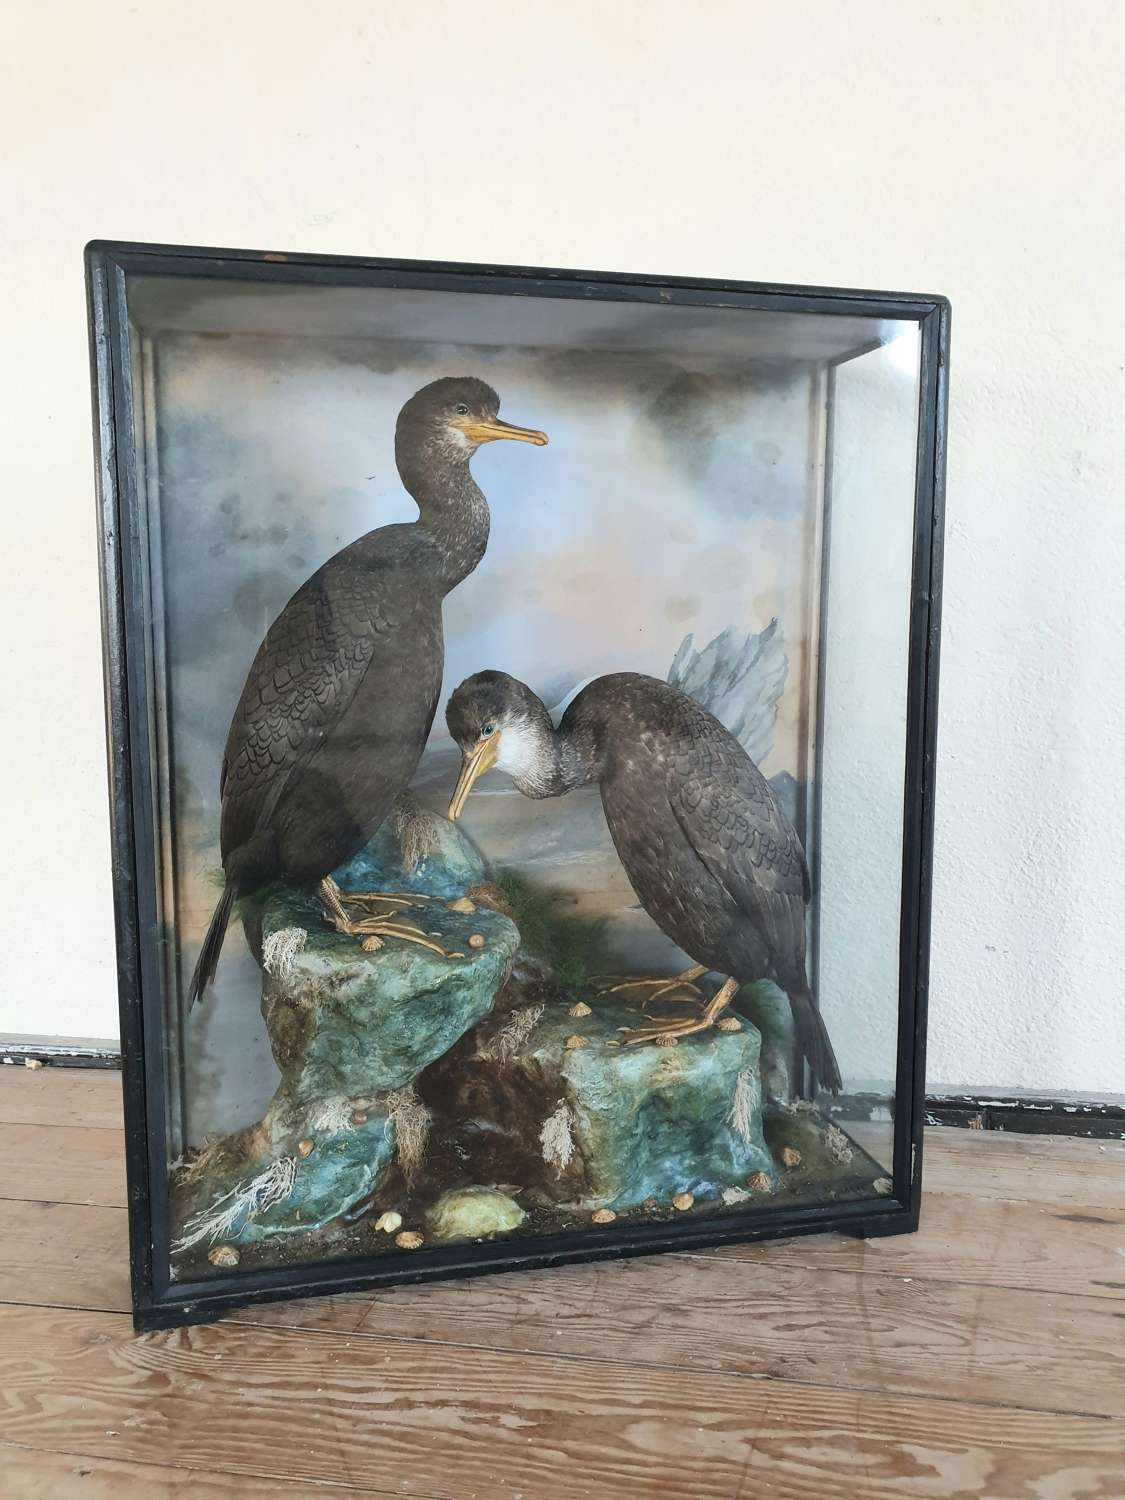 Taxidermy Cormorants by James Hutchings of Aberystwyth